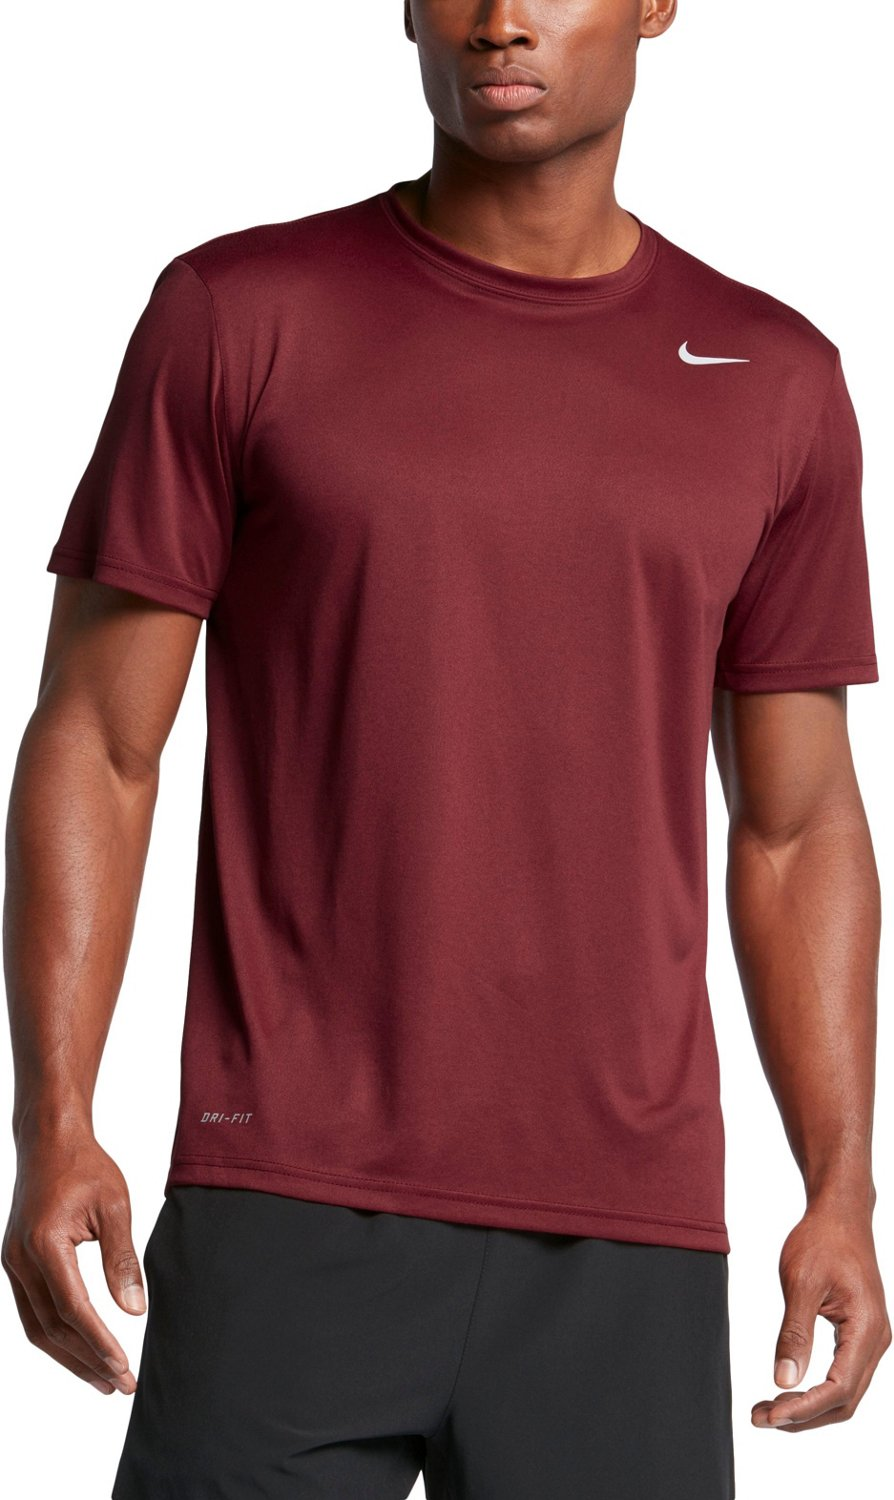 7b0ab98f Nike Men's Legend 2.0 Short Sleeve T-shirt | Academy